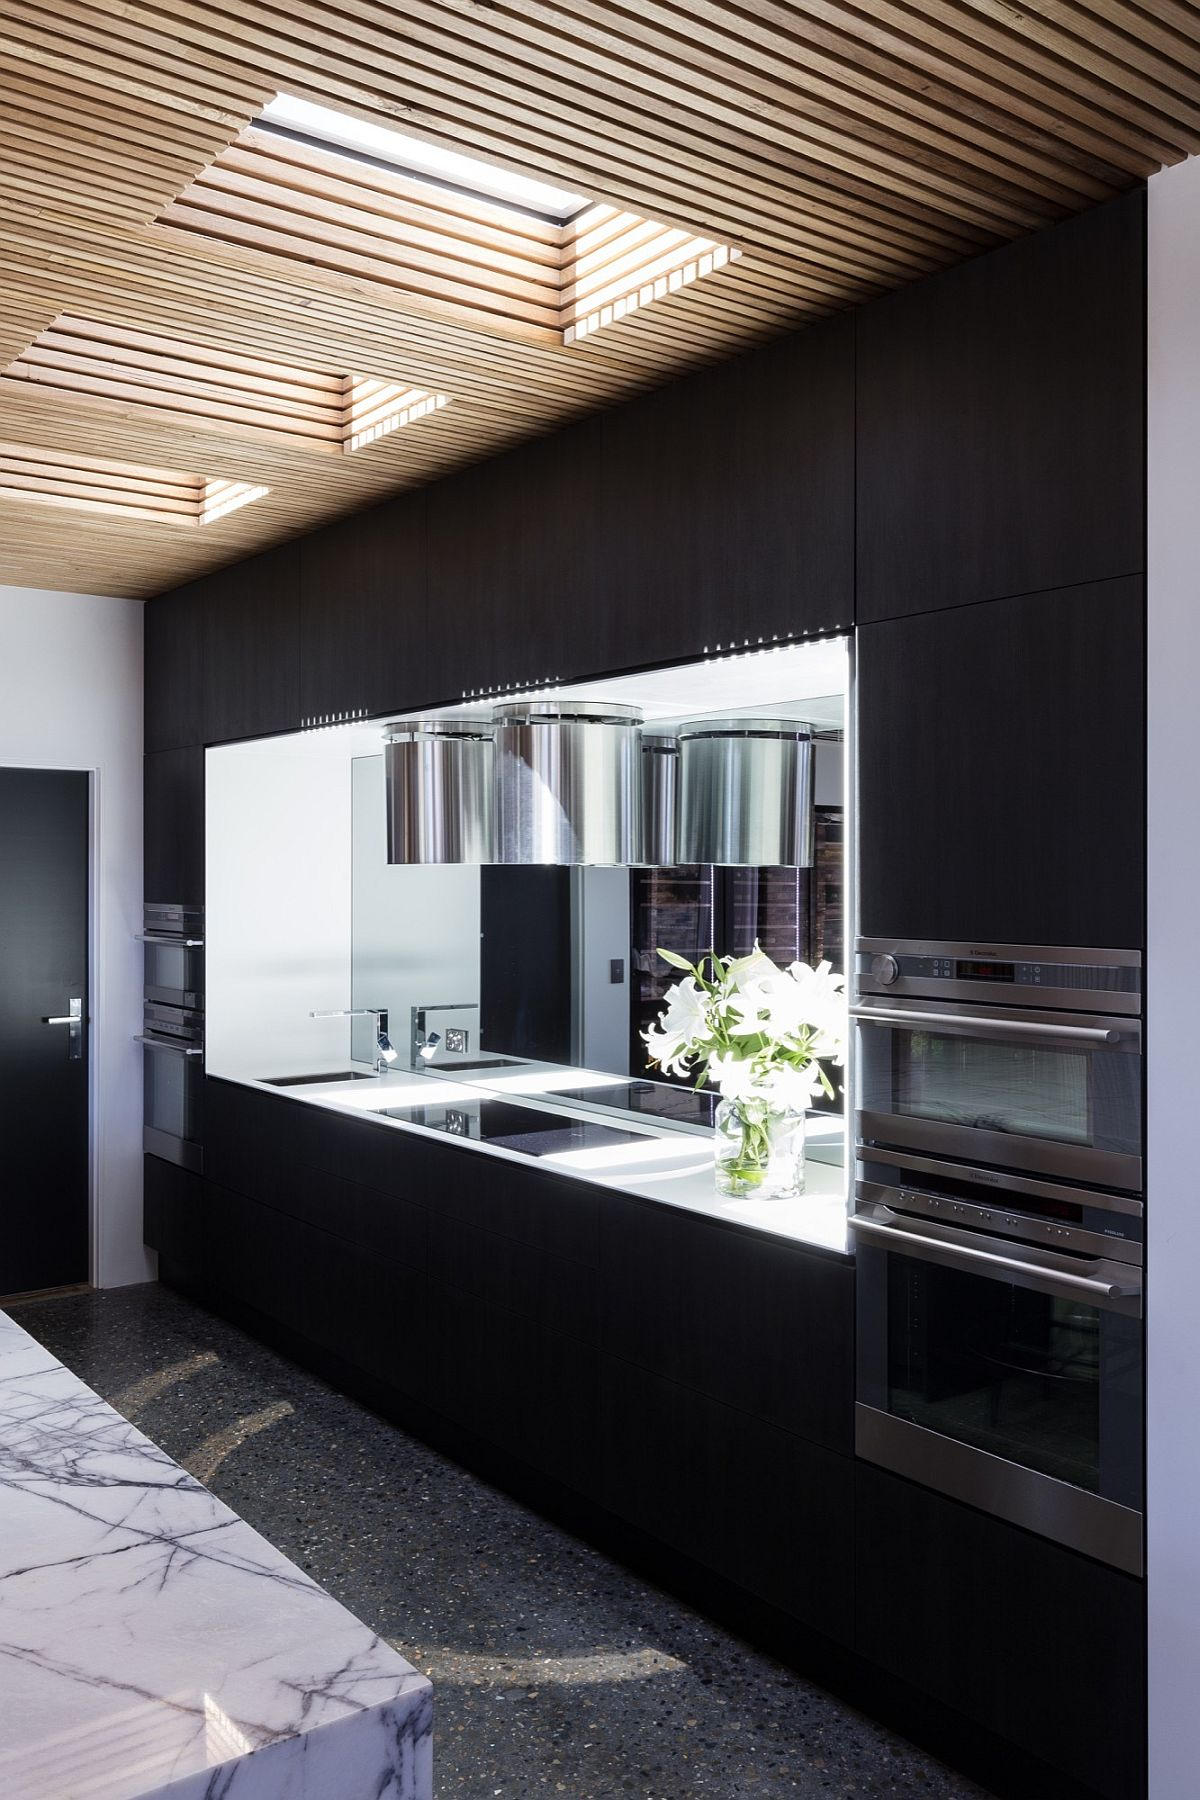 Black kitchen cabinets and white marble island present a contrasting picture